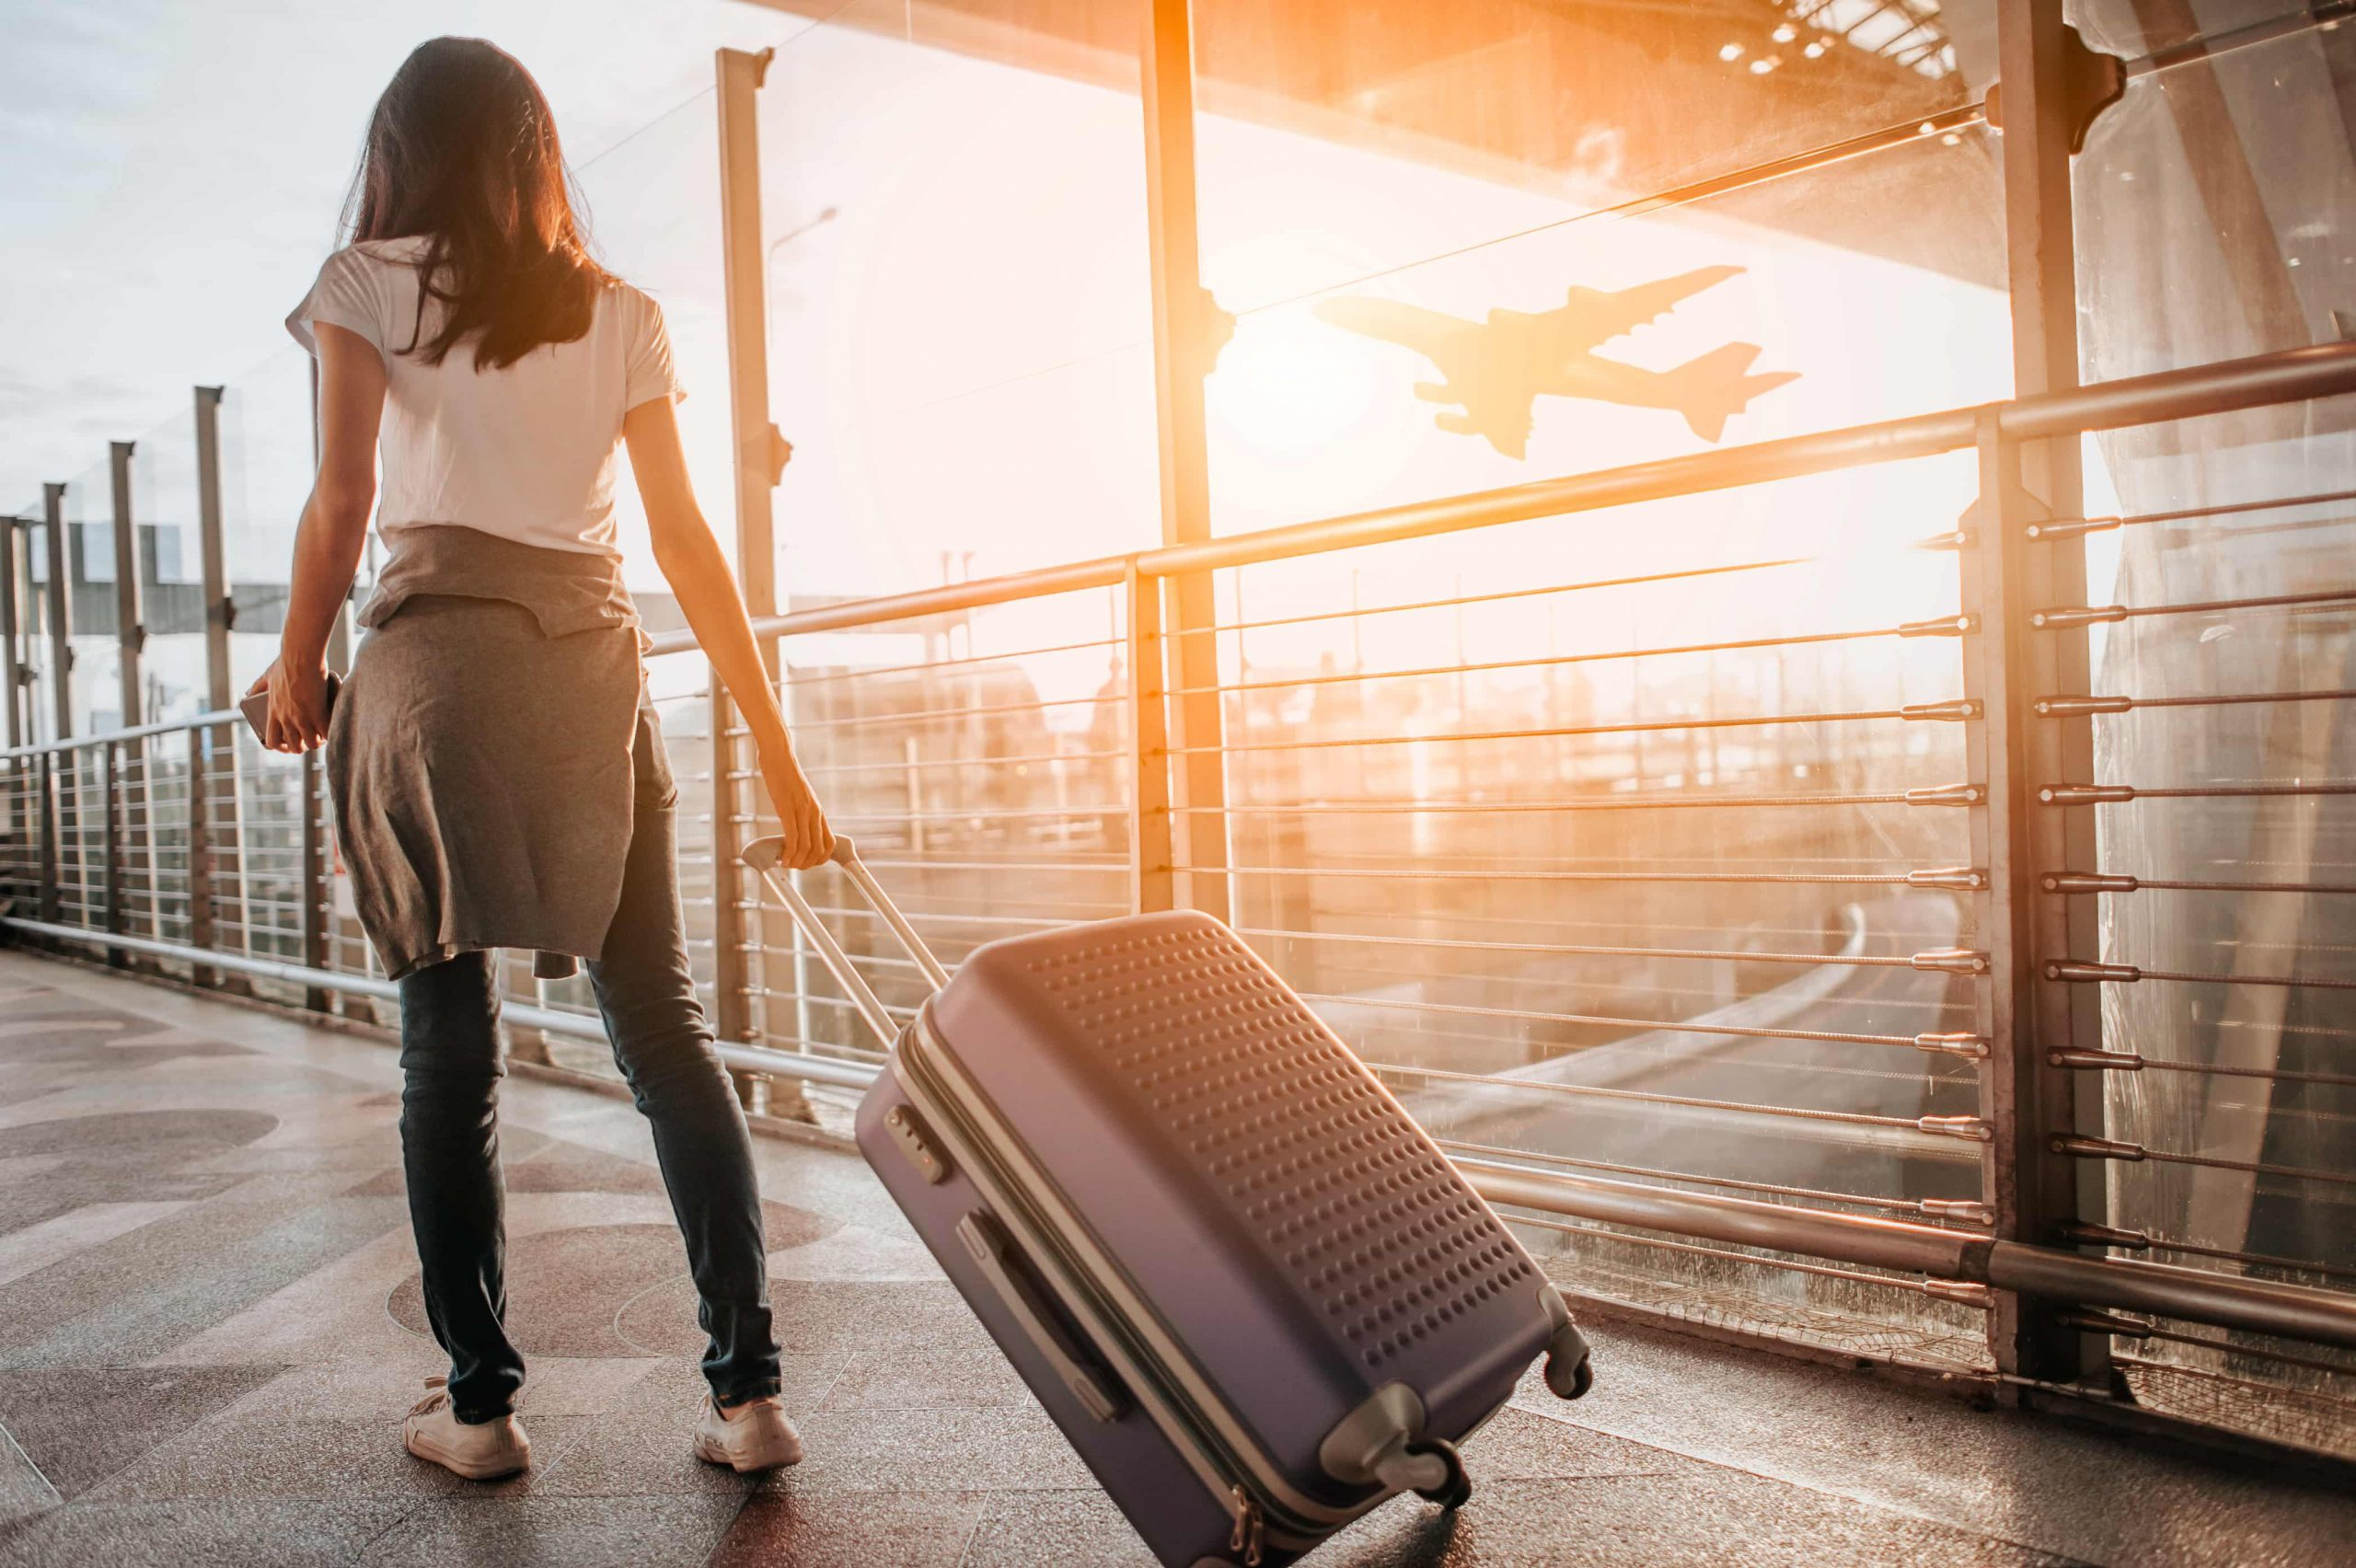 Young woman with a suitcase going to the airport